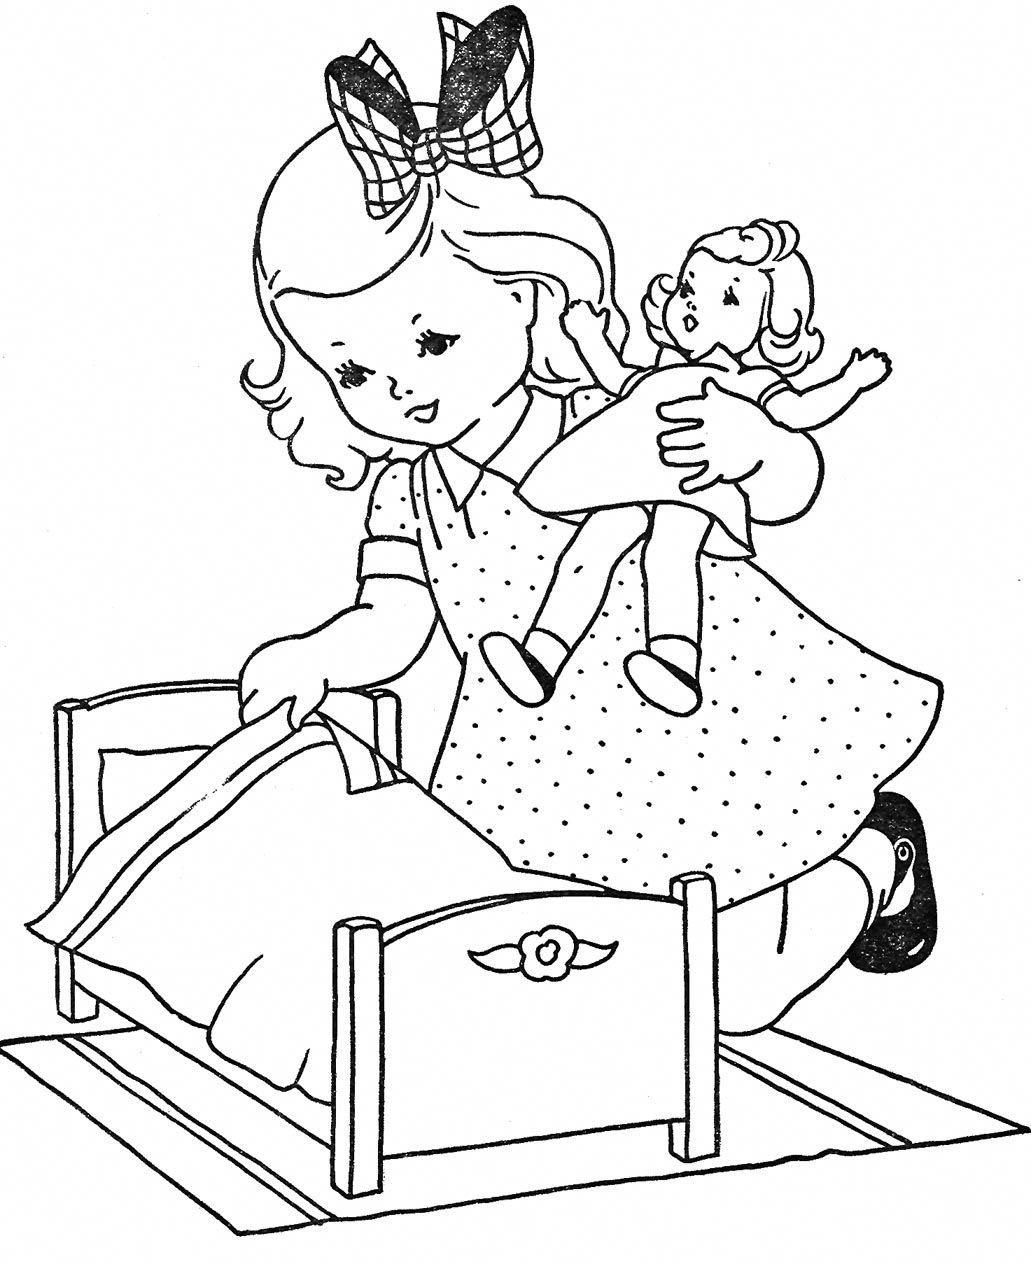 Cute Coloring Pages For Girls And Boys Double Click On Image To Make Full Size For C Cute Coloring Pages Coloring Pages For Girls Coloring Pages Inspirational